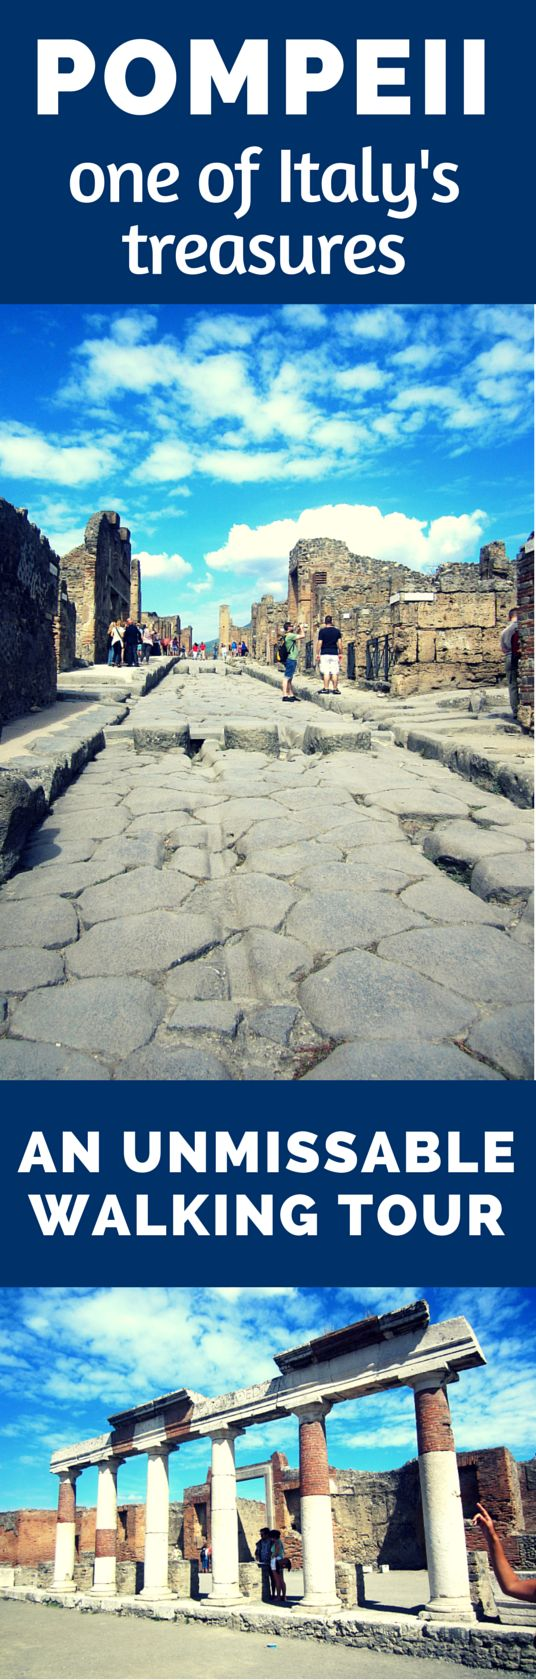 """Knowing the architecture and ancient ruins is just a short visit from Naples, we joined the 'Best Of"""" from Walks of Italy's collection of Pompeii tours."""